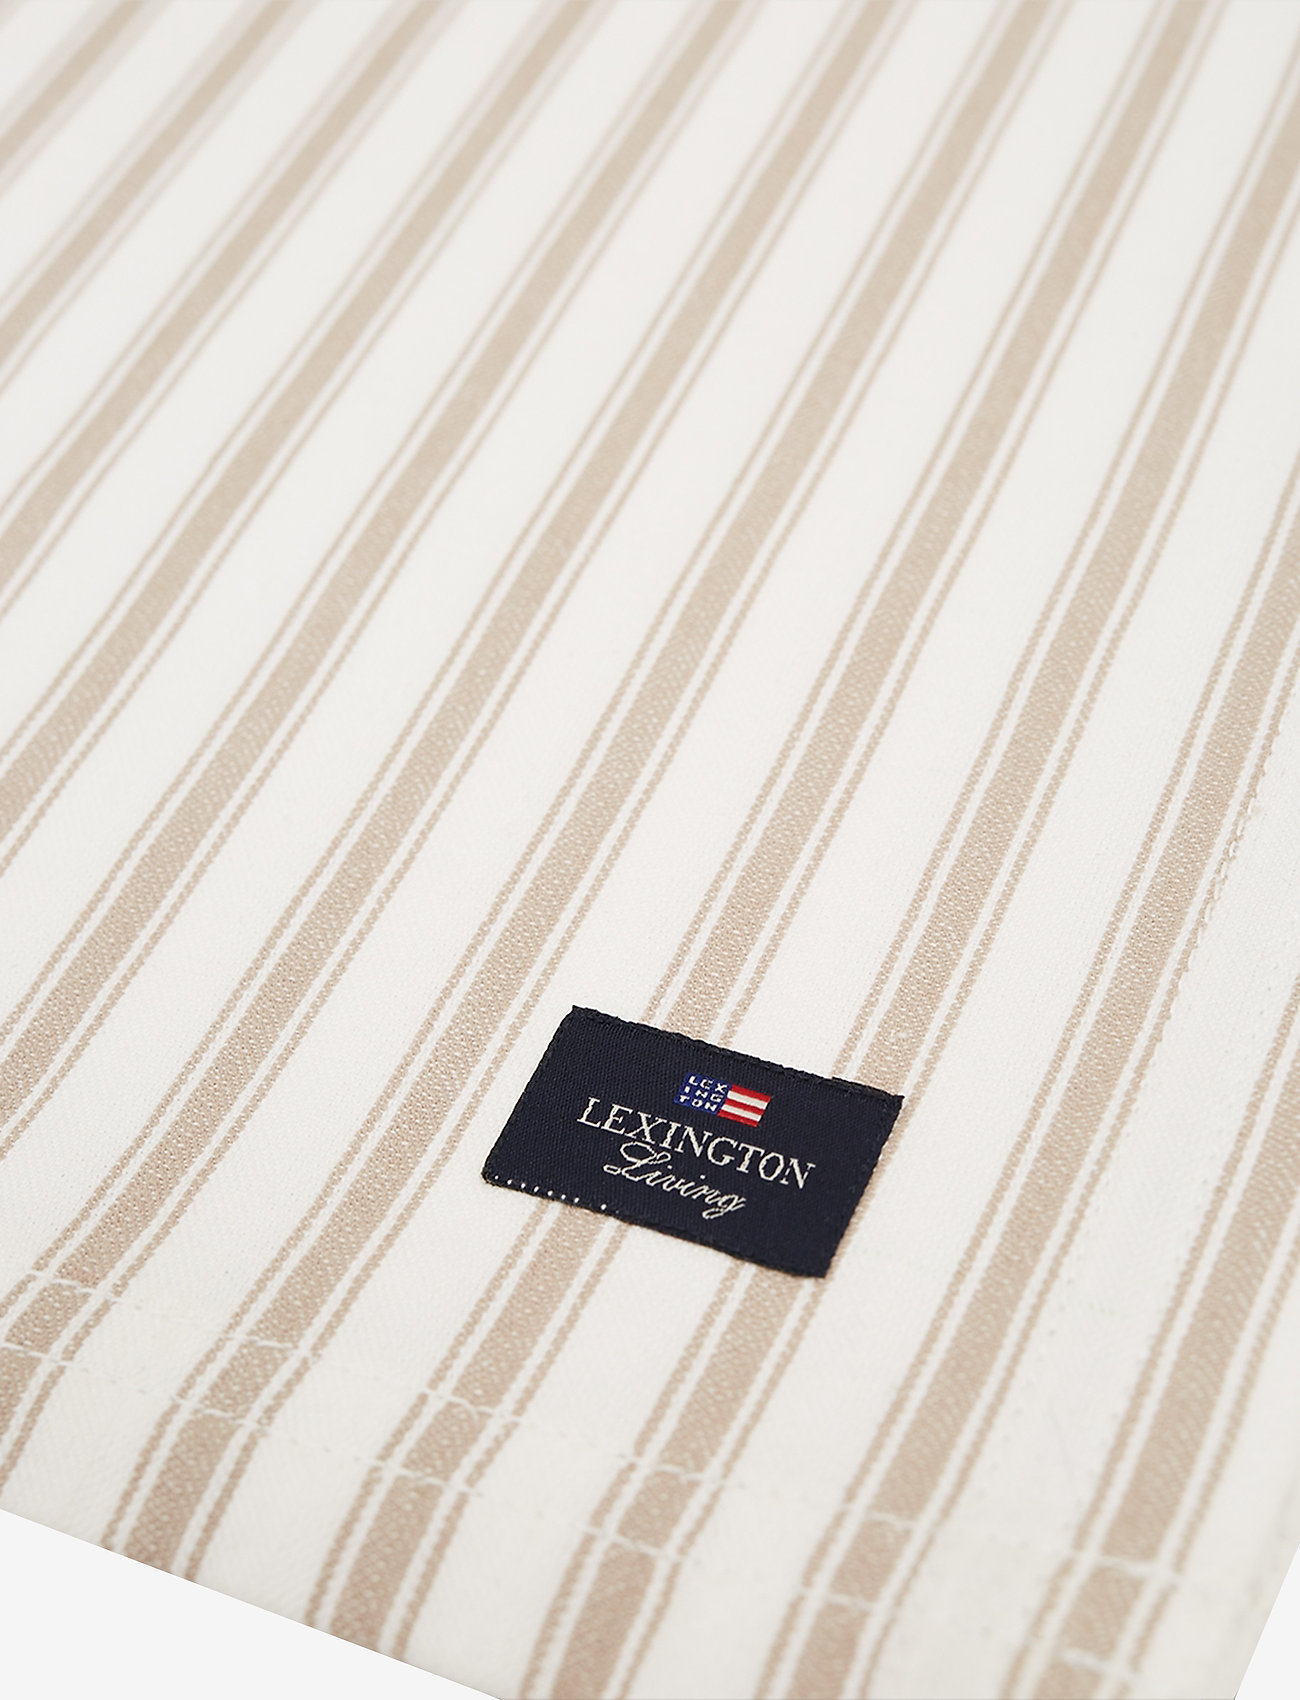 Lexington Home Icons Cotton Herringbone Striped Runner Tischdecken Tischläufer Boozt Com